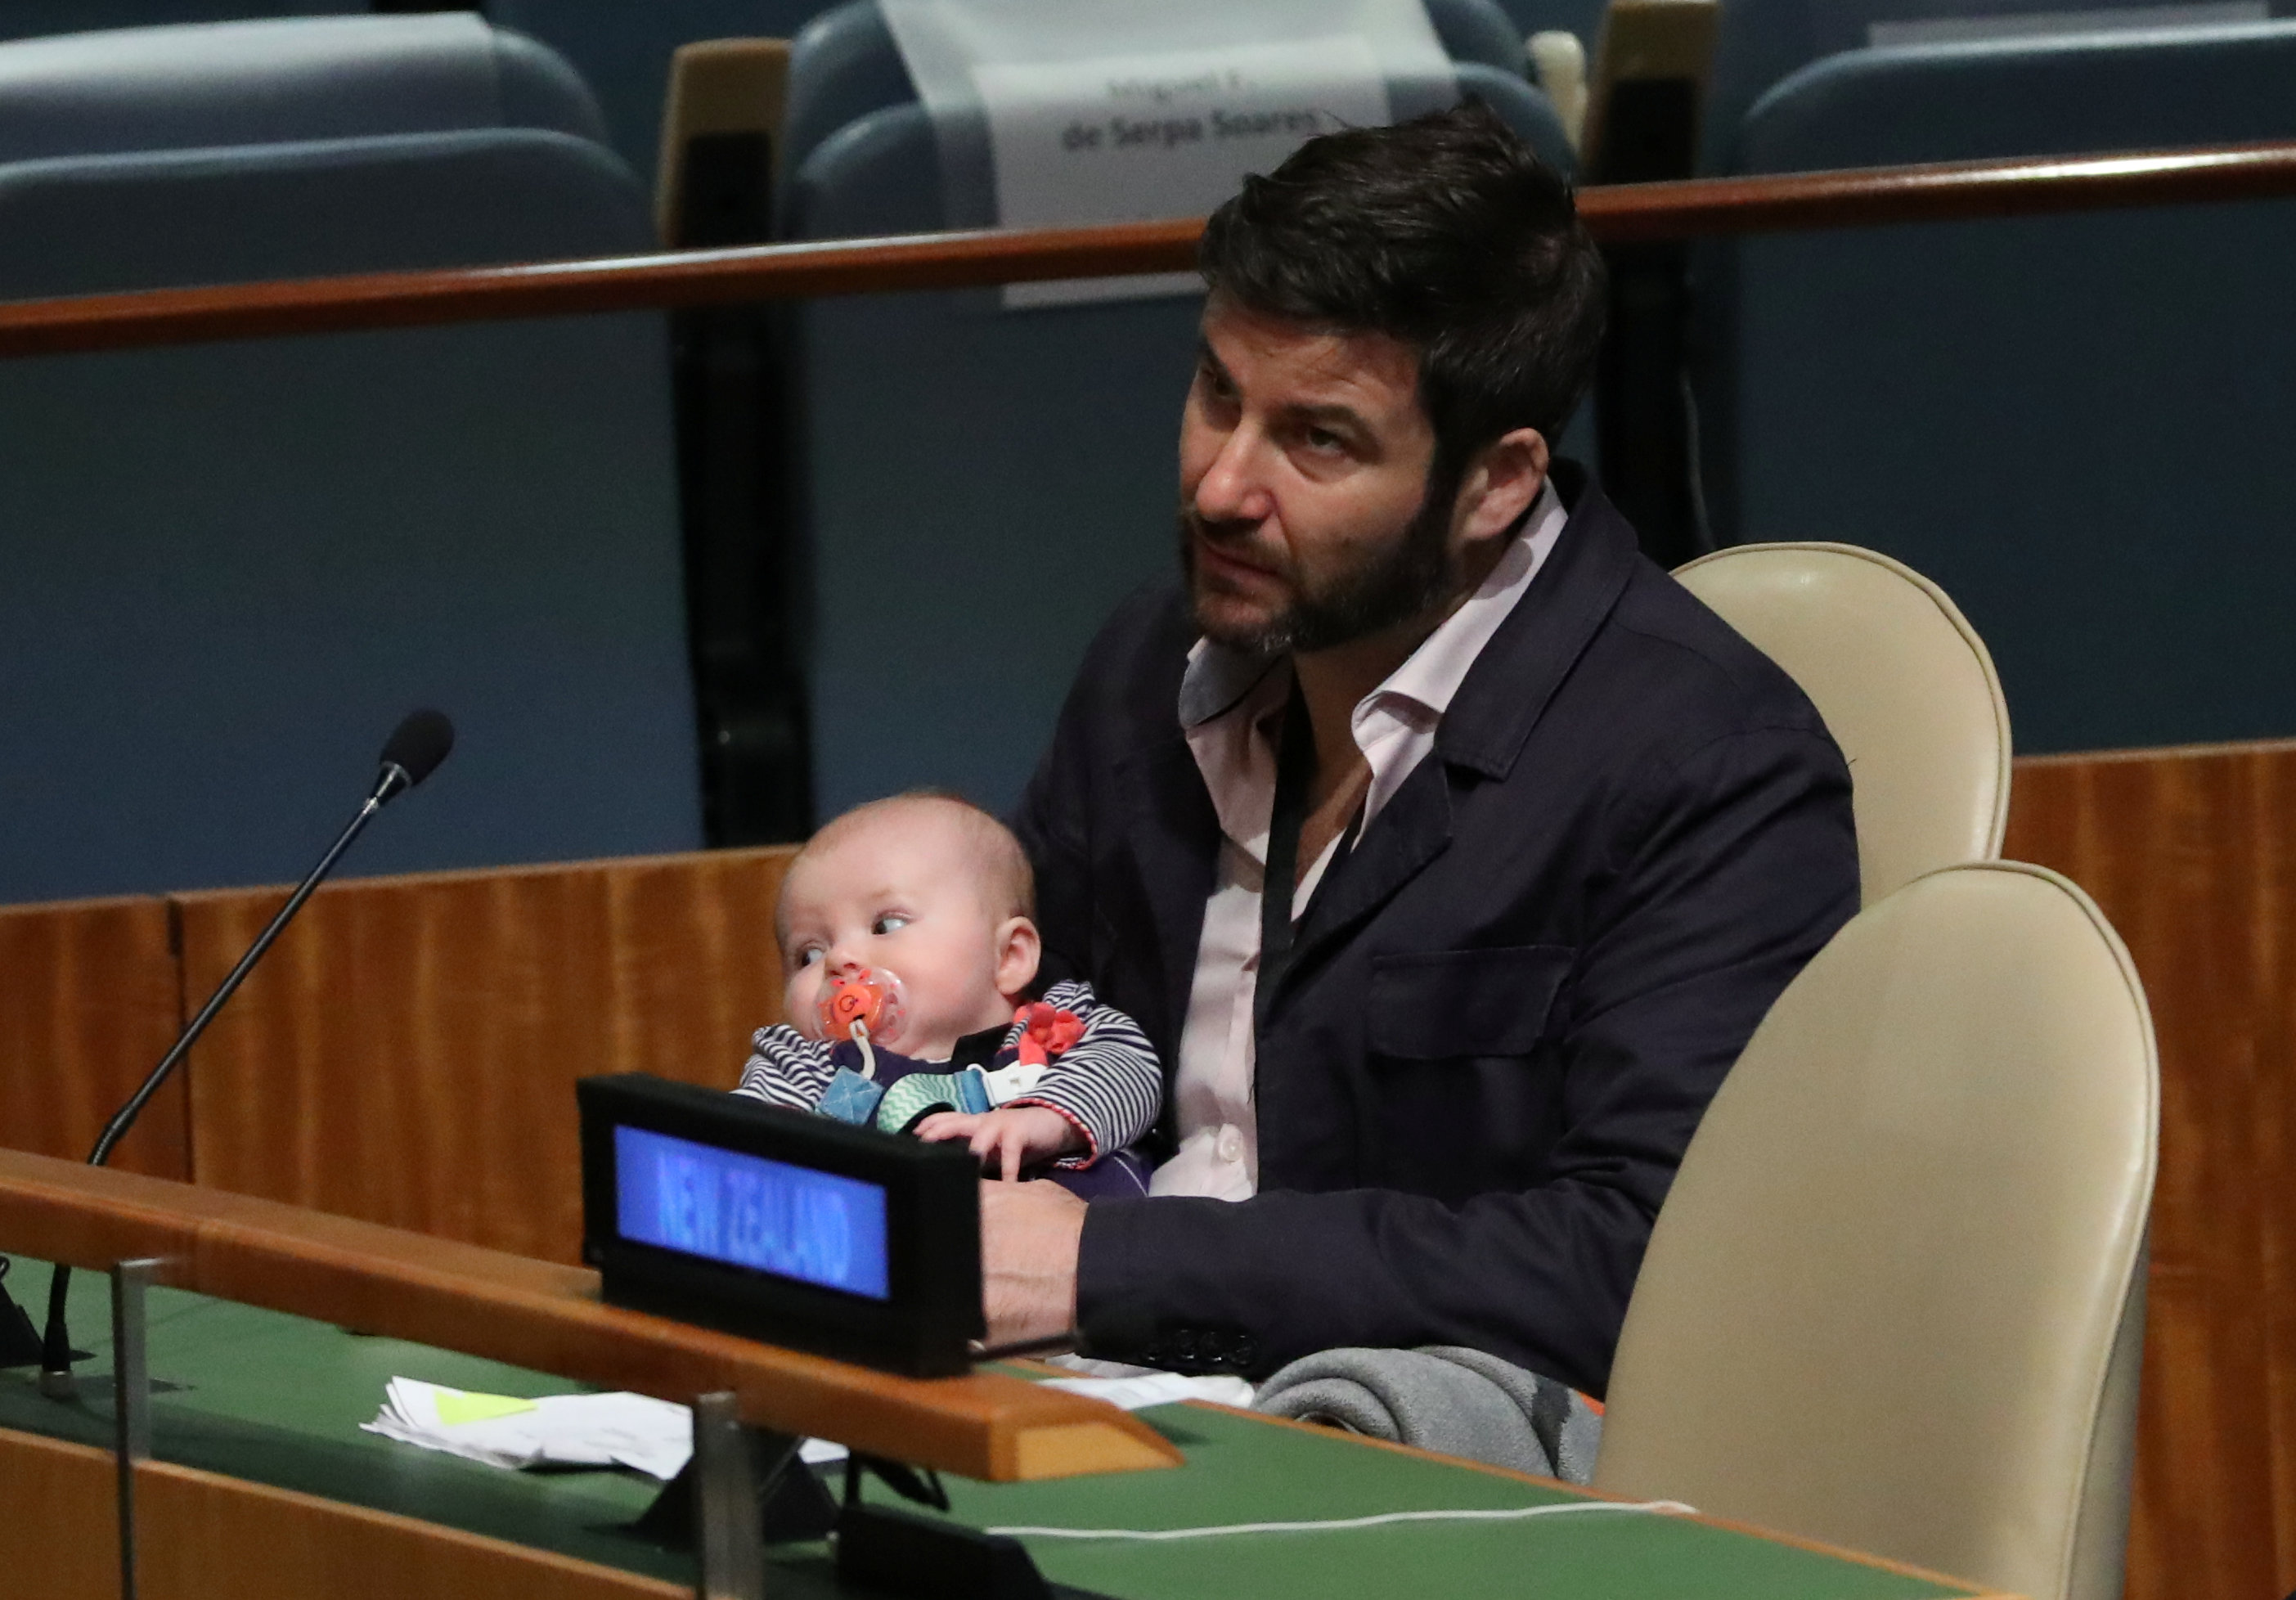 Clarke Gayford, partner to New Zealand Prime Minister Jacinda Ardern holds their baby Neve as Ardern speaks at the Nelson Mandela Peace Summit during the 73rd United Nations General Assembly in New York, U.S., September 24, 2018. REUTERS/Carlo Allegri